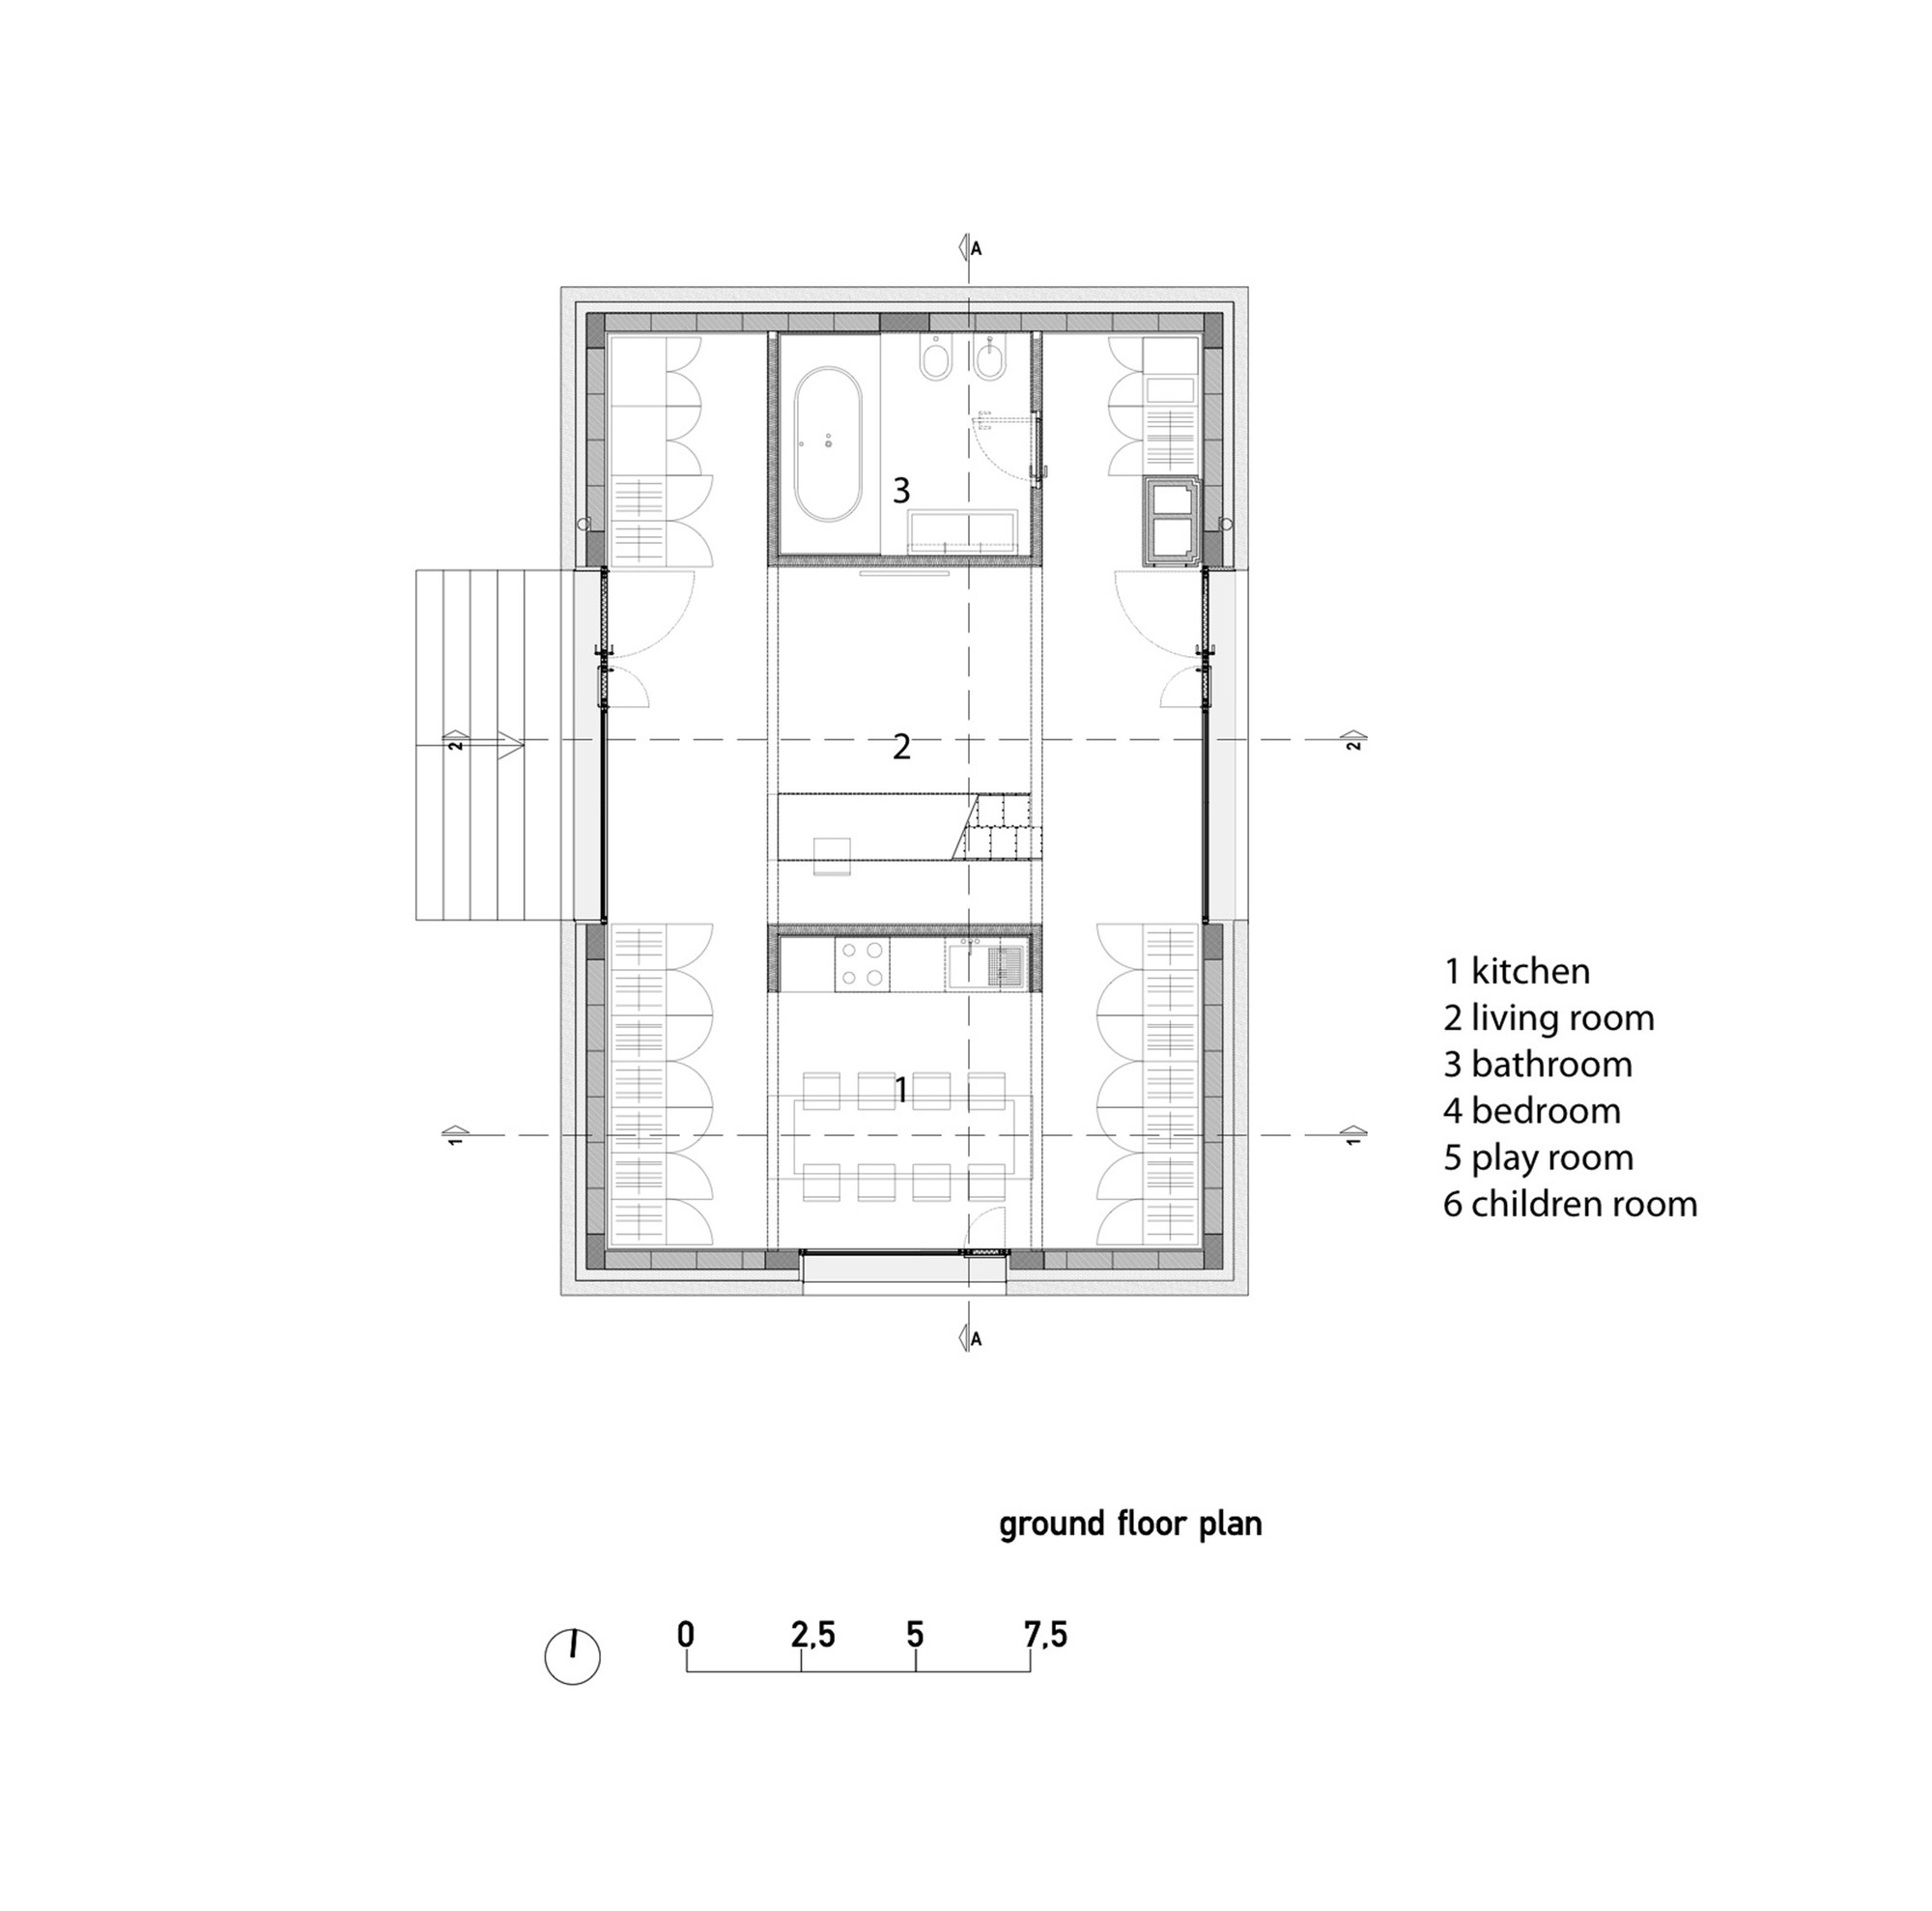 Buy Garage Gable Roof Plans further Floor Plans likewise Space Planning likewise Ryue Nishizawa moreover 54a221cde58ece20e800003b. on en house plans